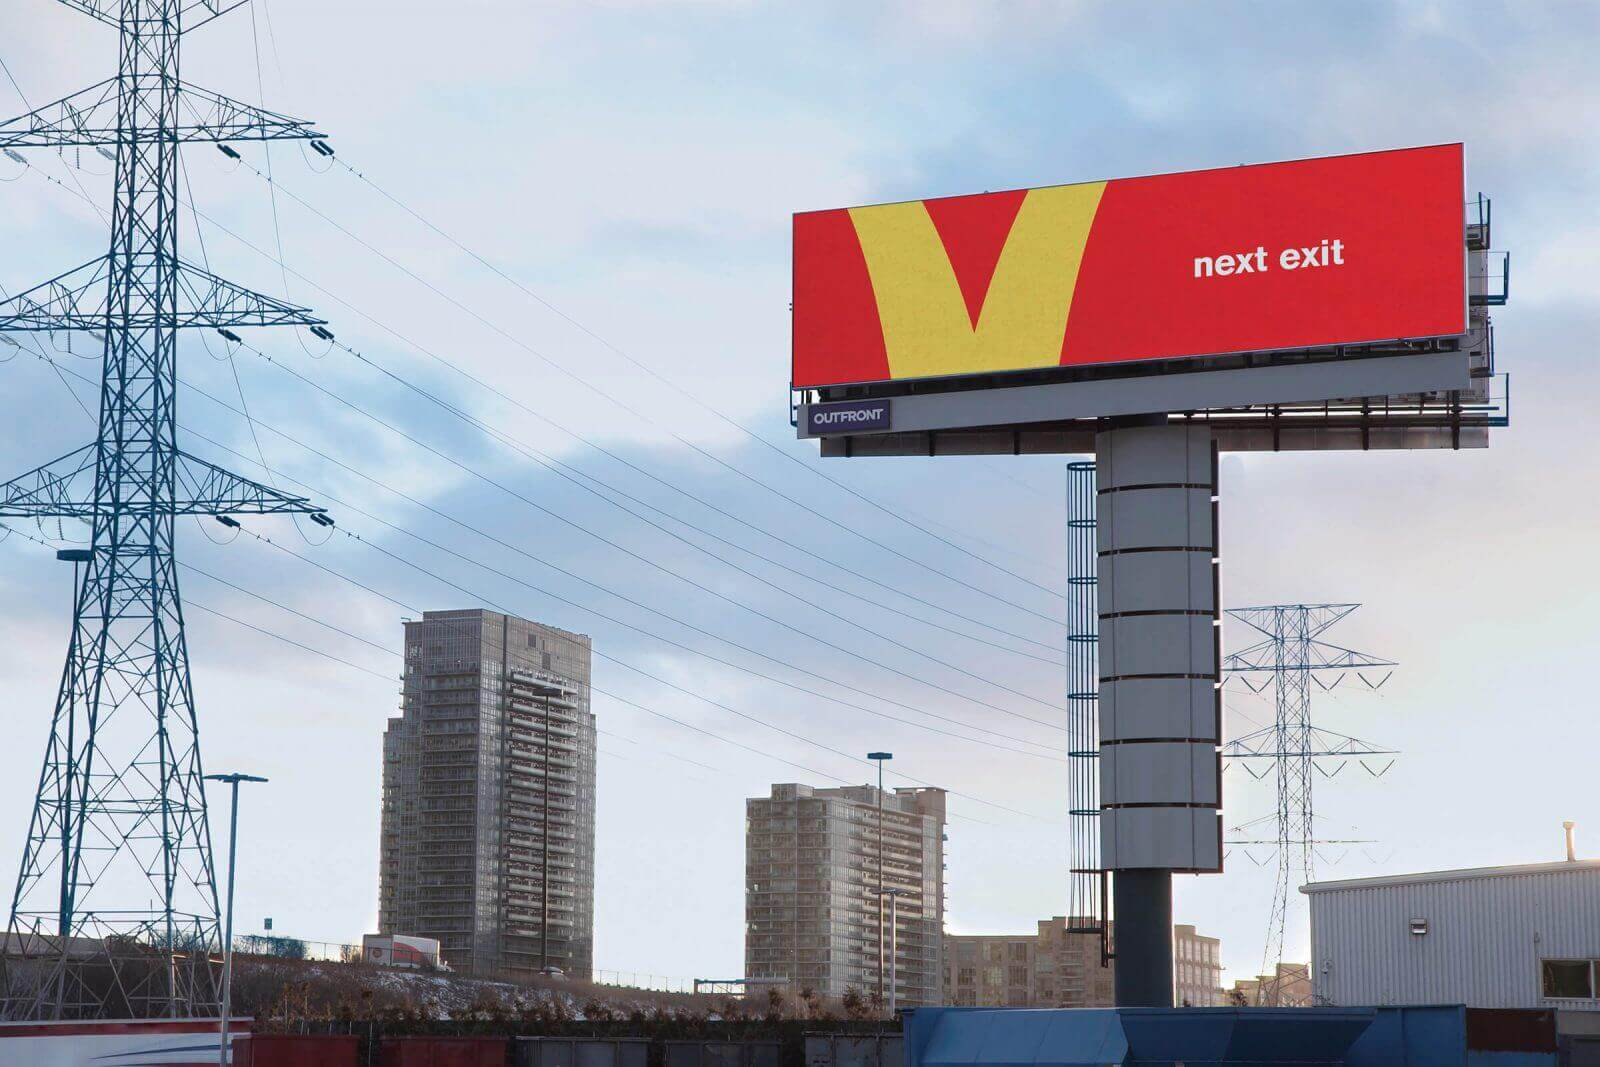 McDonalds billboards prove the value of a good brand mark